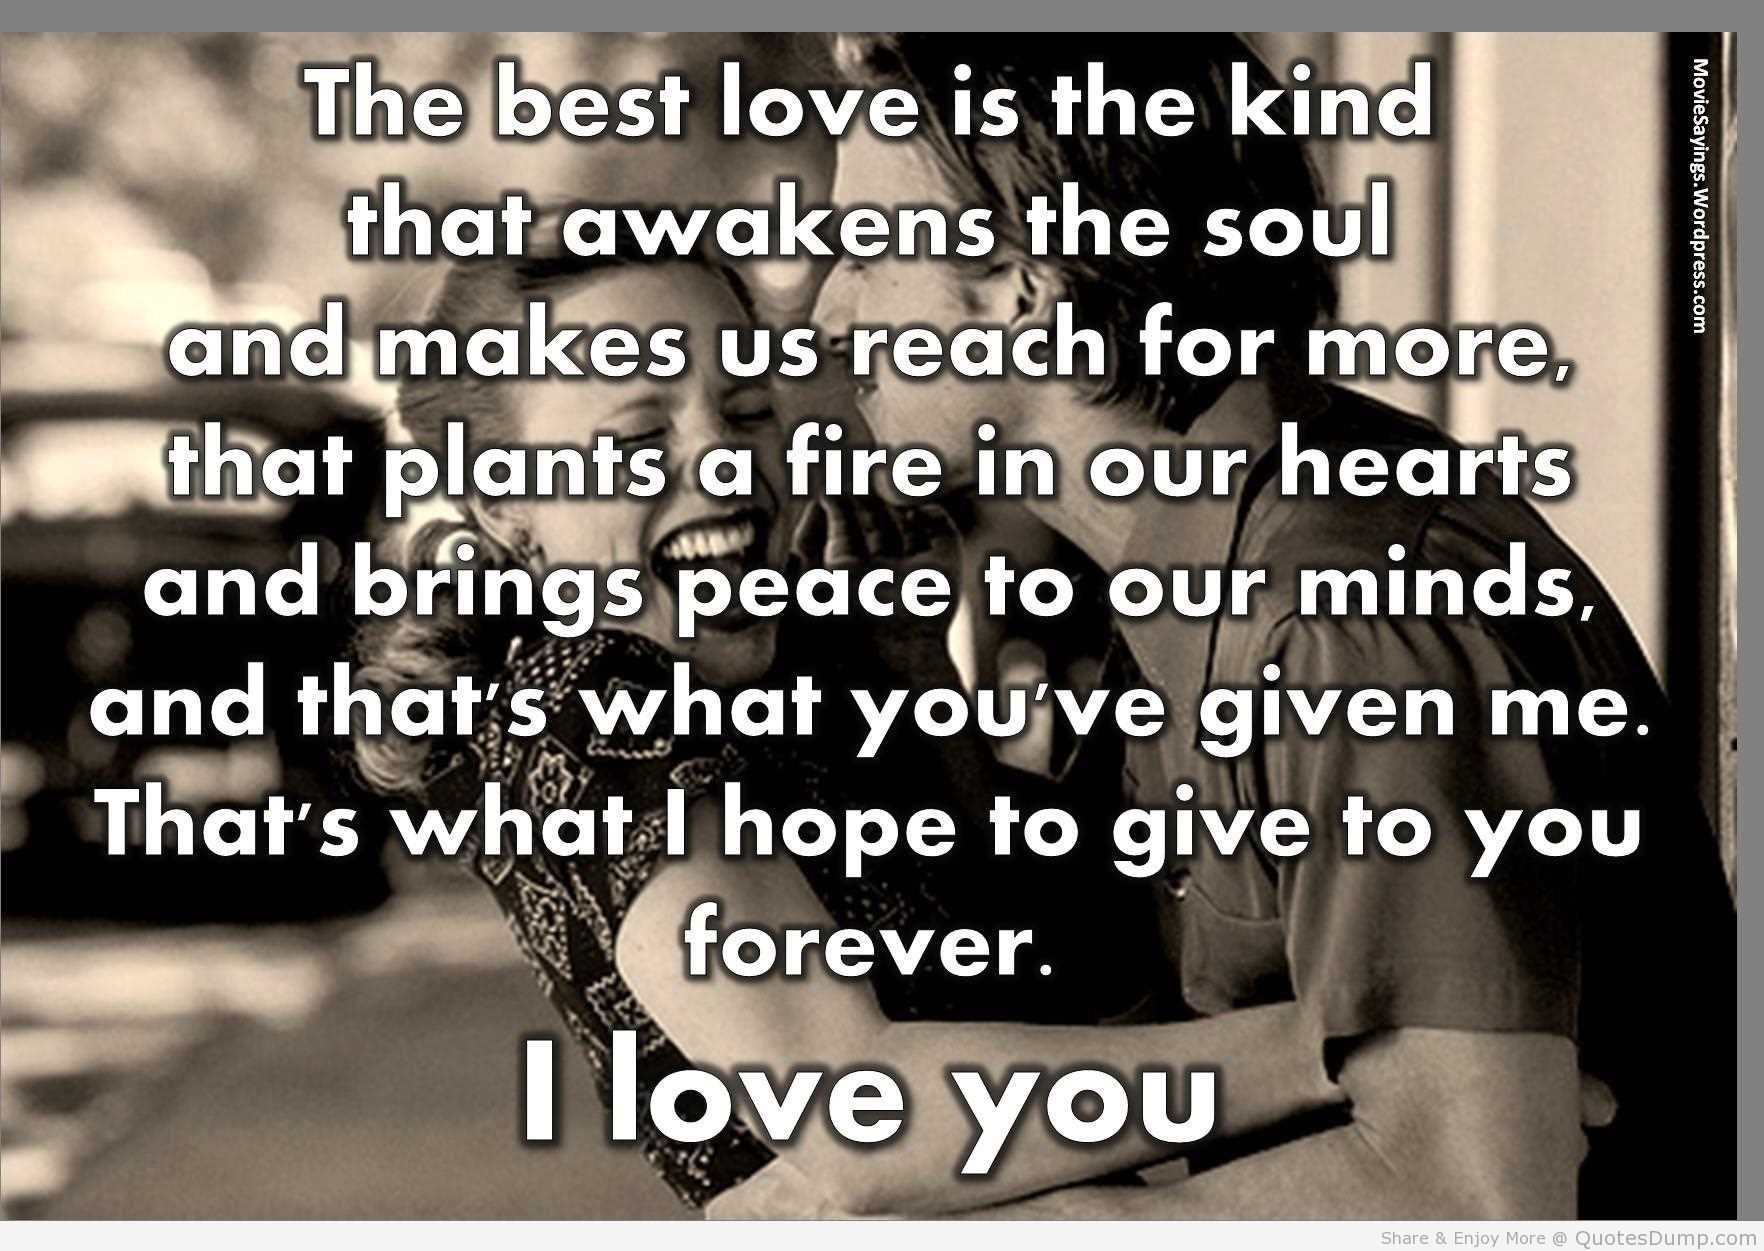 The Notebook Quotes The Best Kind Of Love the best tr love quotes | The Notebook Quotes The Best Kind Of  The Notebook Quotes The Best Kind Of Love